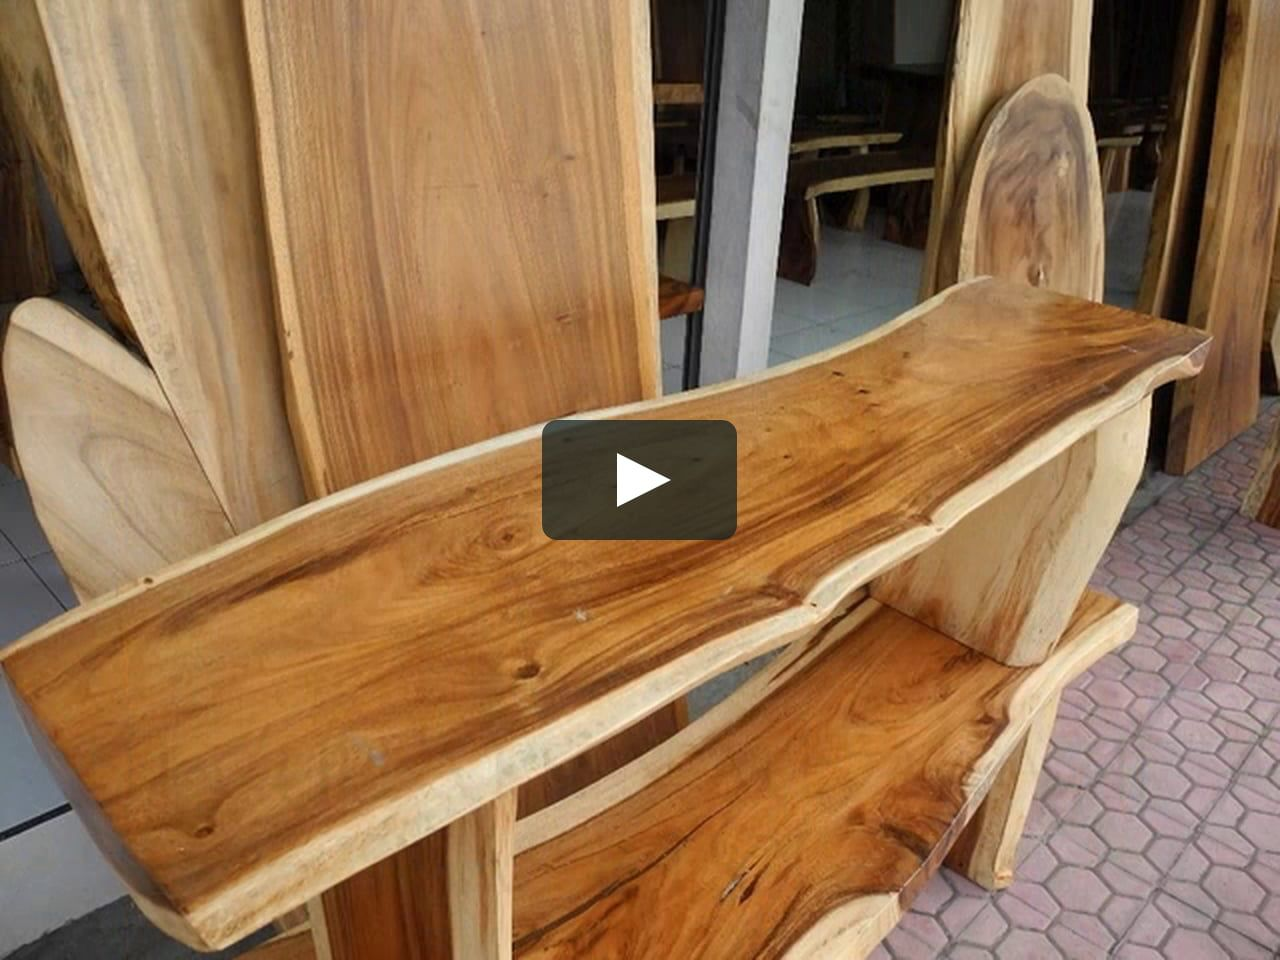 Merveilleux Wood Slab Table Tops For Sale. Solid Hardwoods Lumber Cut Wood Slabs Made  From Our Exotic Woods Collection. Large Suar Wood Dining Table Tops,  Albizia Saman ...